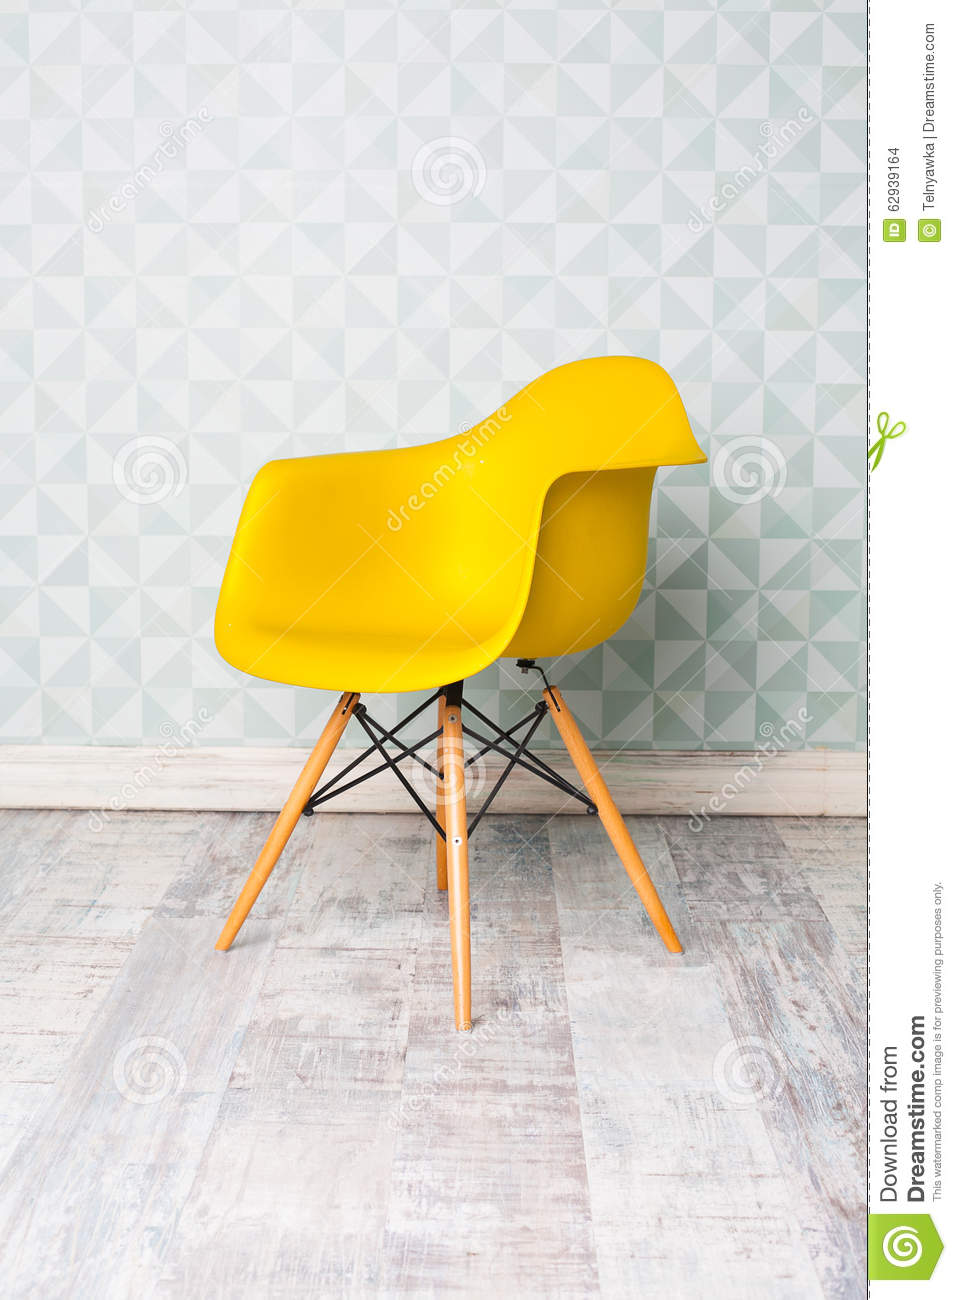 Modern Yellow Chair Stock Photo Image Of Contemporary 62939164